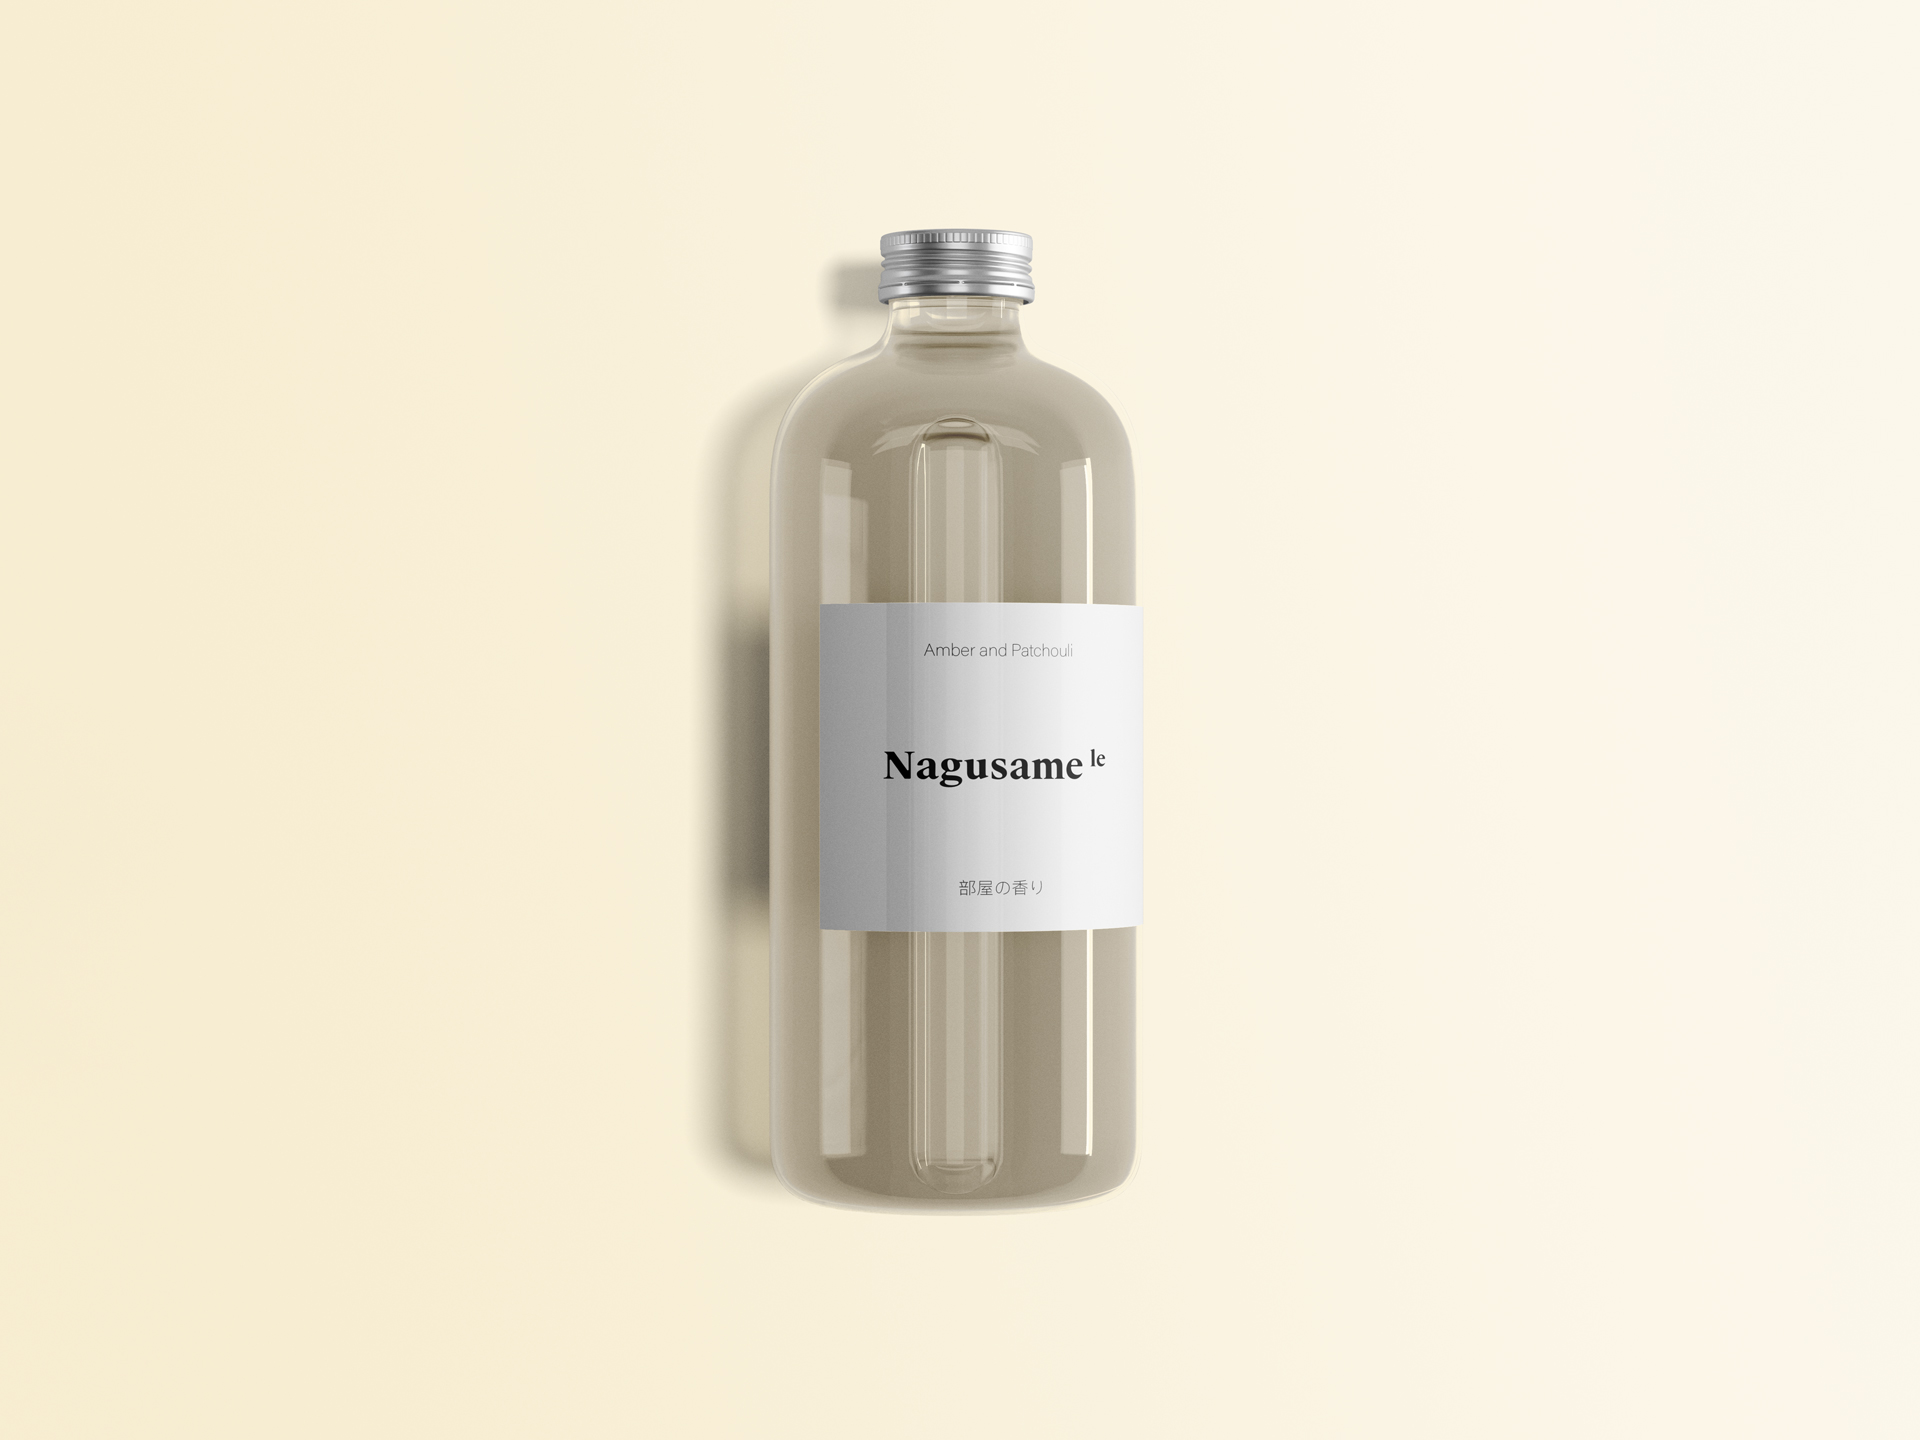 nagusame-le-room-spray-amber-and-patchouli.jpg